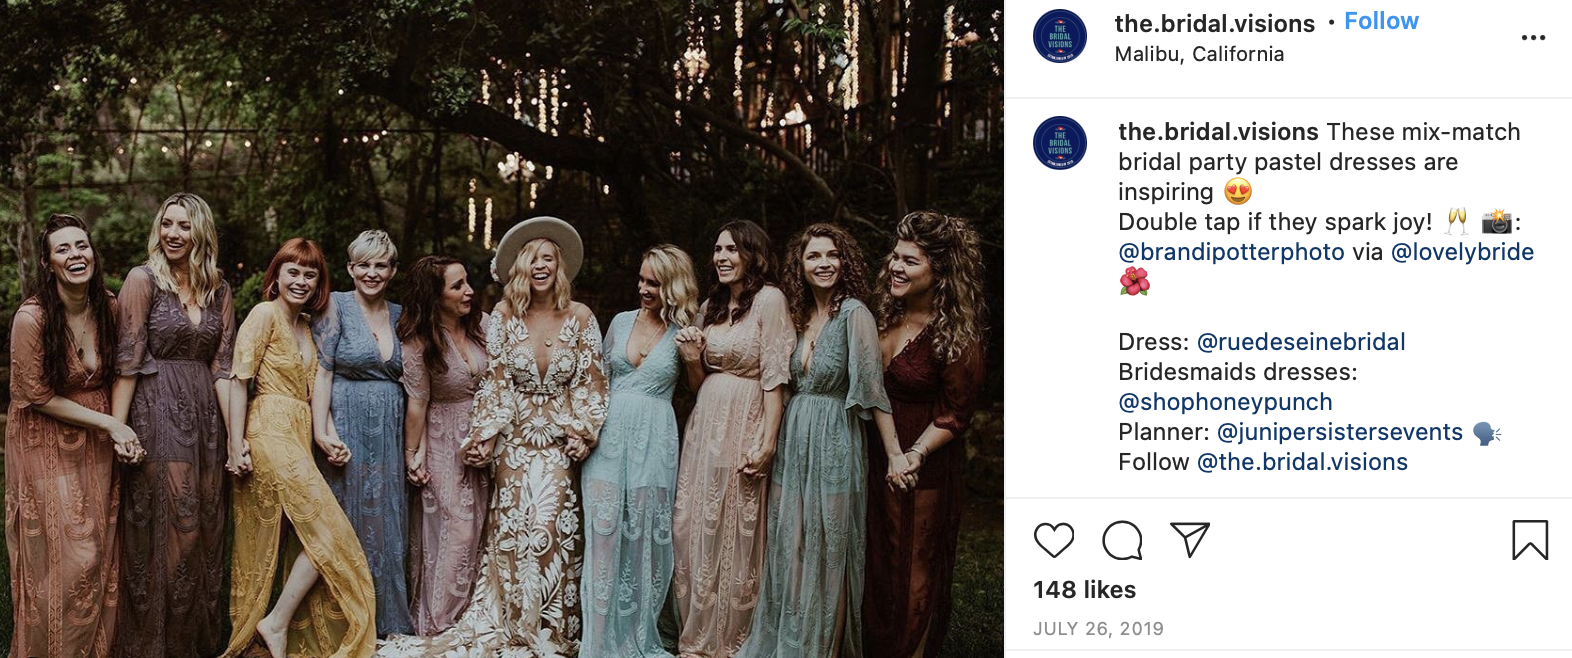 bride and her bridesmaids wearing mix and match dresses